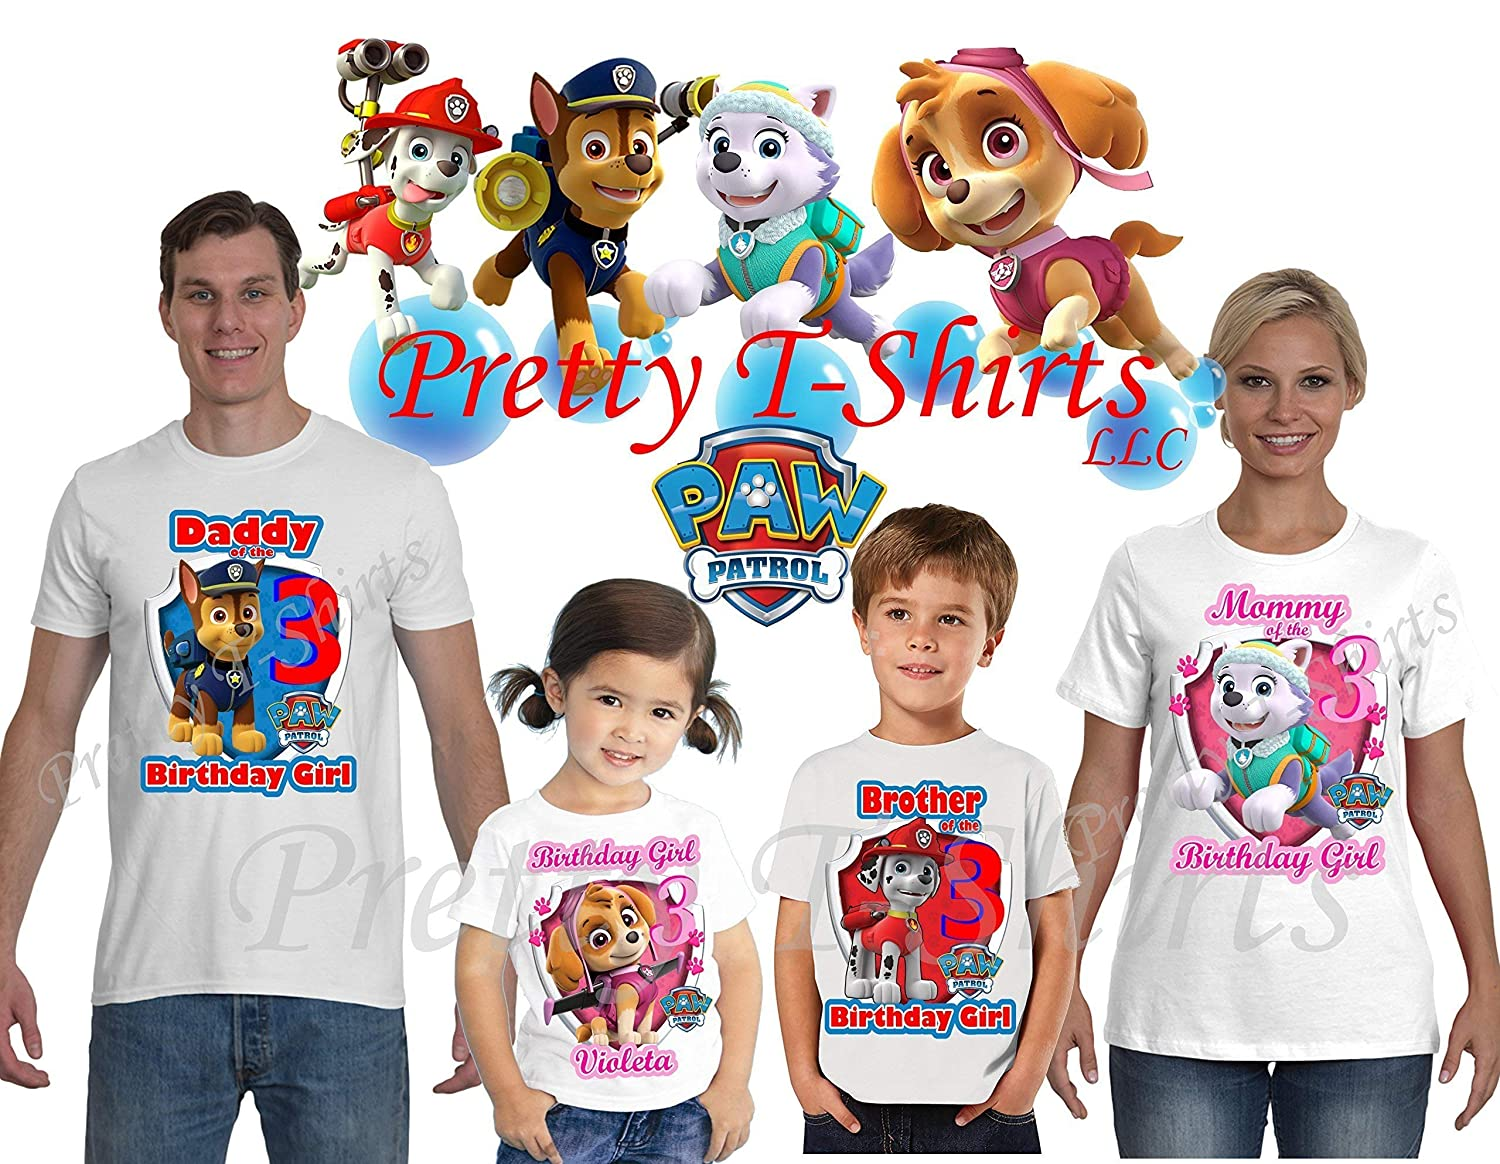 Birthday FAMILY Shirt Paw Patrol Birthday Boy Shirt Paw Patrol Party Favor Paw Patrol Birthday Shirt VISIT OUR SHOP!! Add ANY name and Age